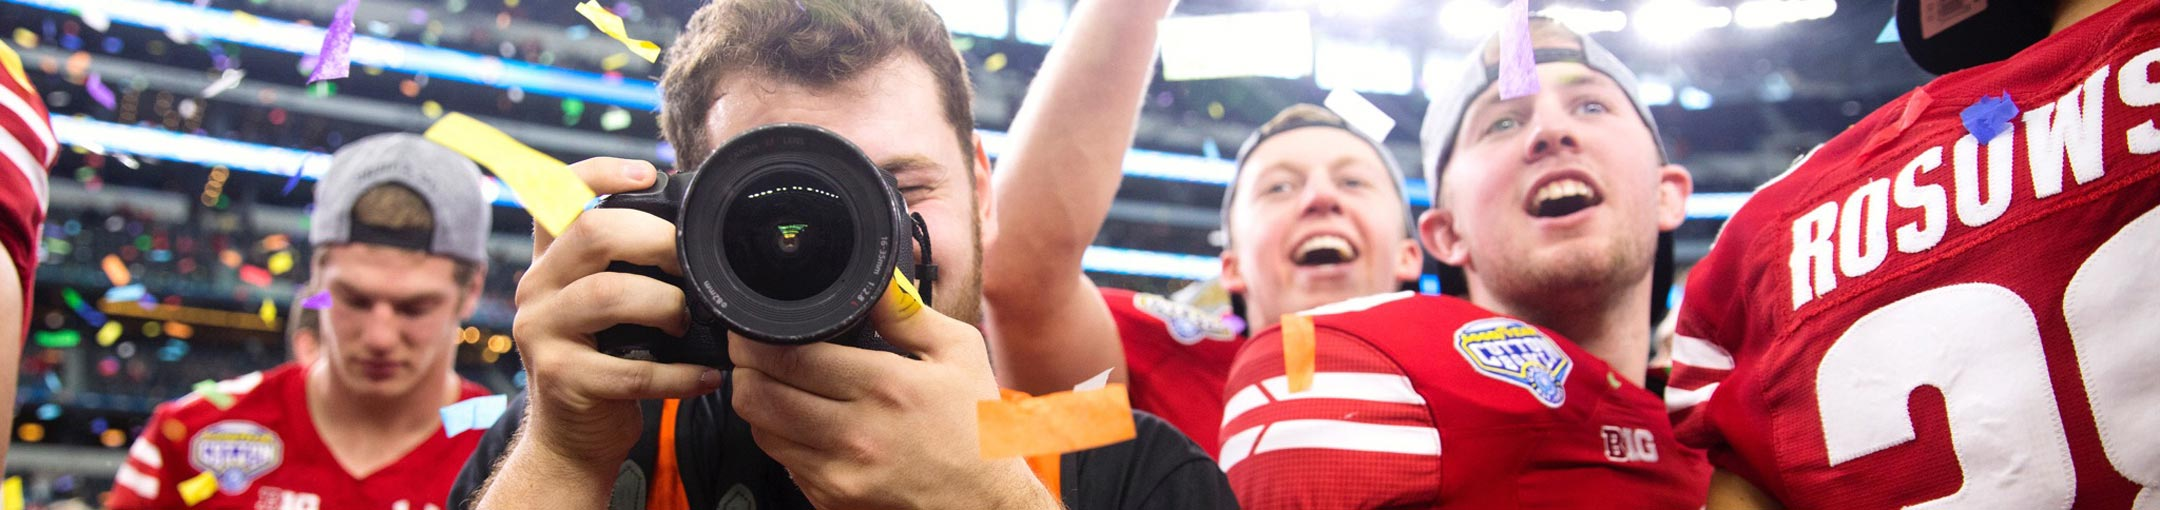 Football players in red stand behind a photographer who's camera is looking straight ahead at the viewer